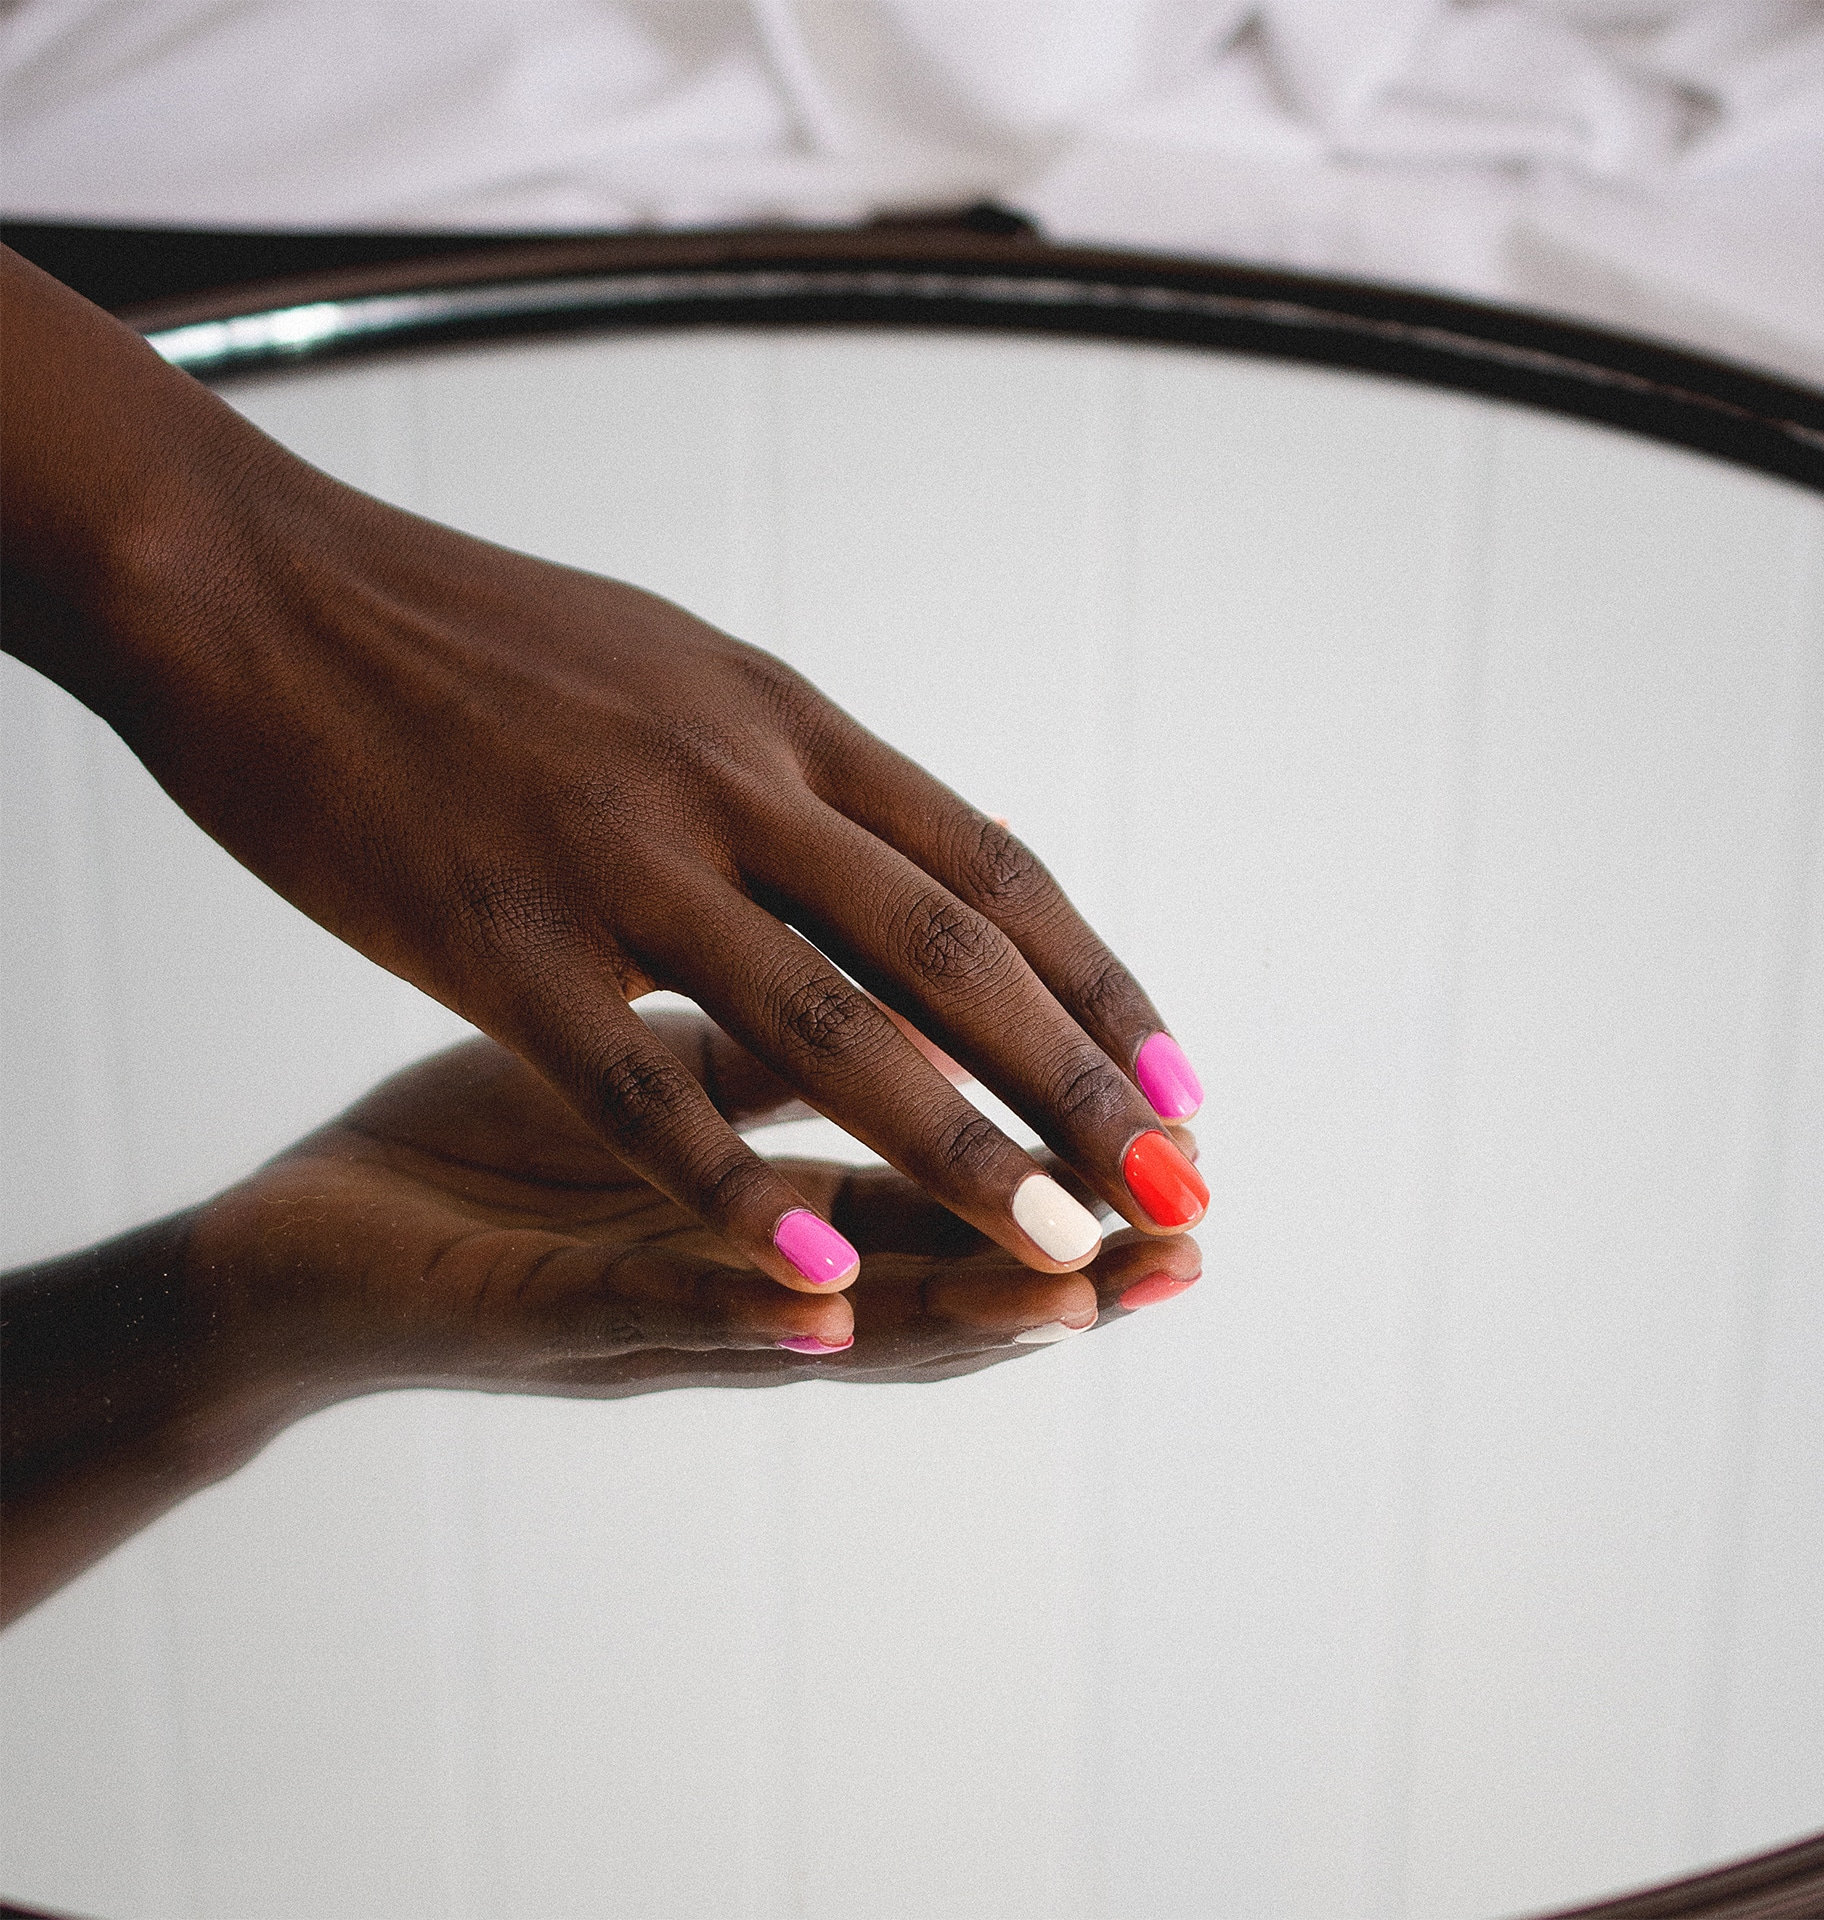 dark skin hand posed on a mirror wearing 3 different nail polishes by sienna